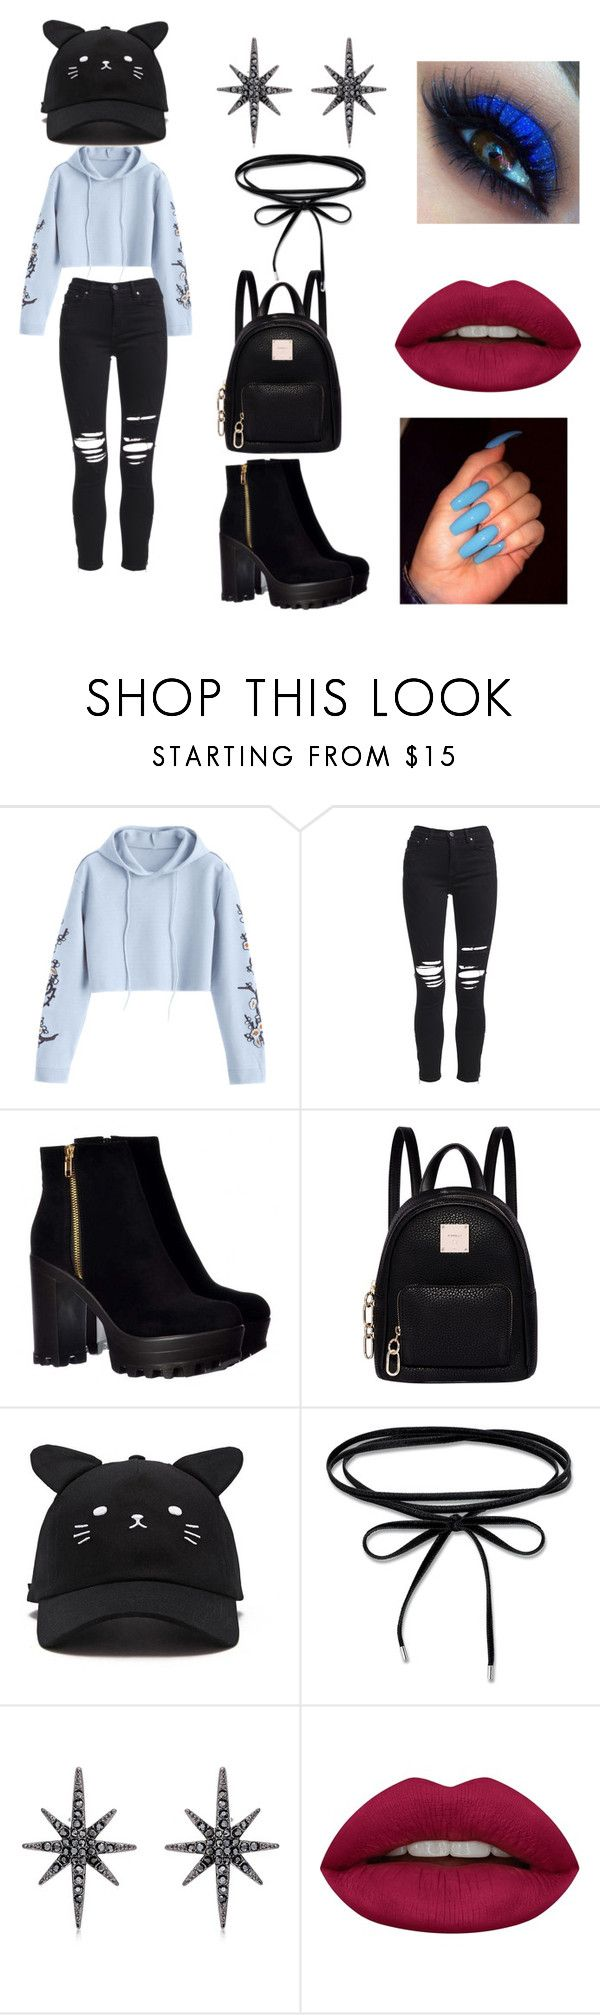 """""""."""" by blackdack ❤ liked on Polyvore featuring AMIRI, Fiorelli, Forever 21, Federica Tosi and Huda Beauty"""